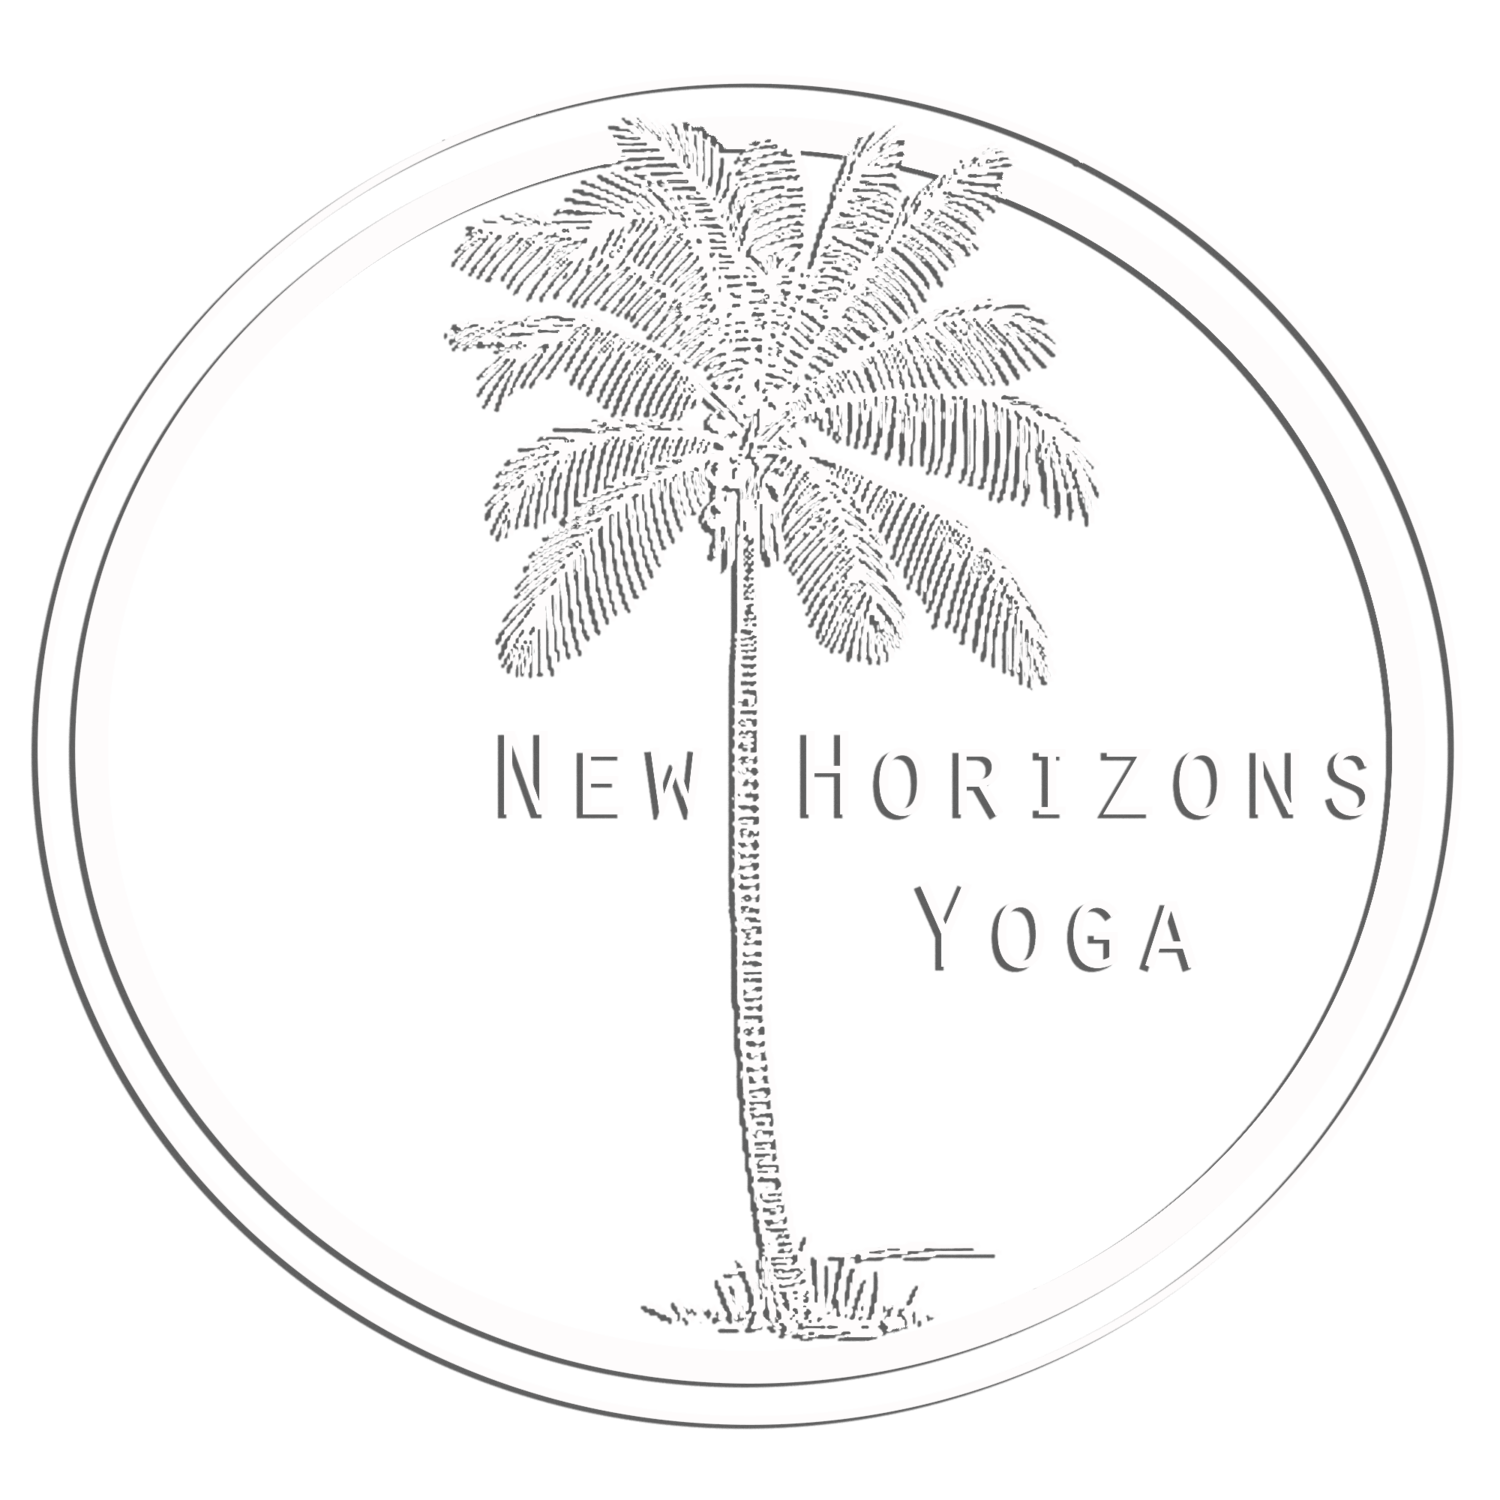 New Horizons Yoga